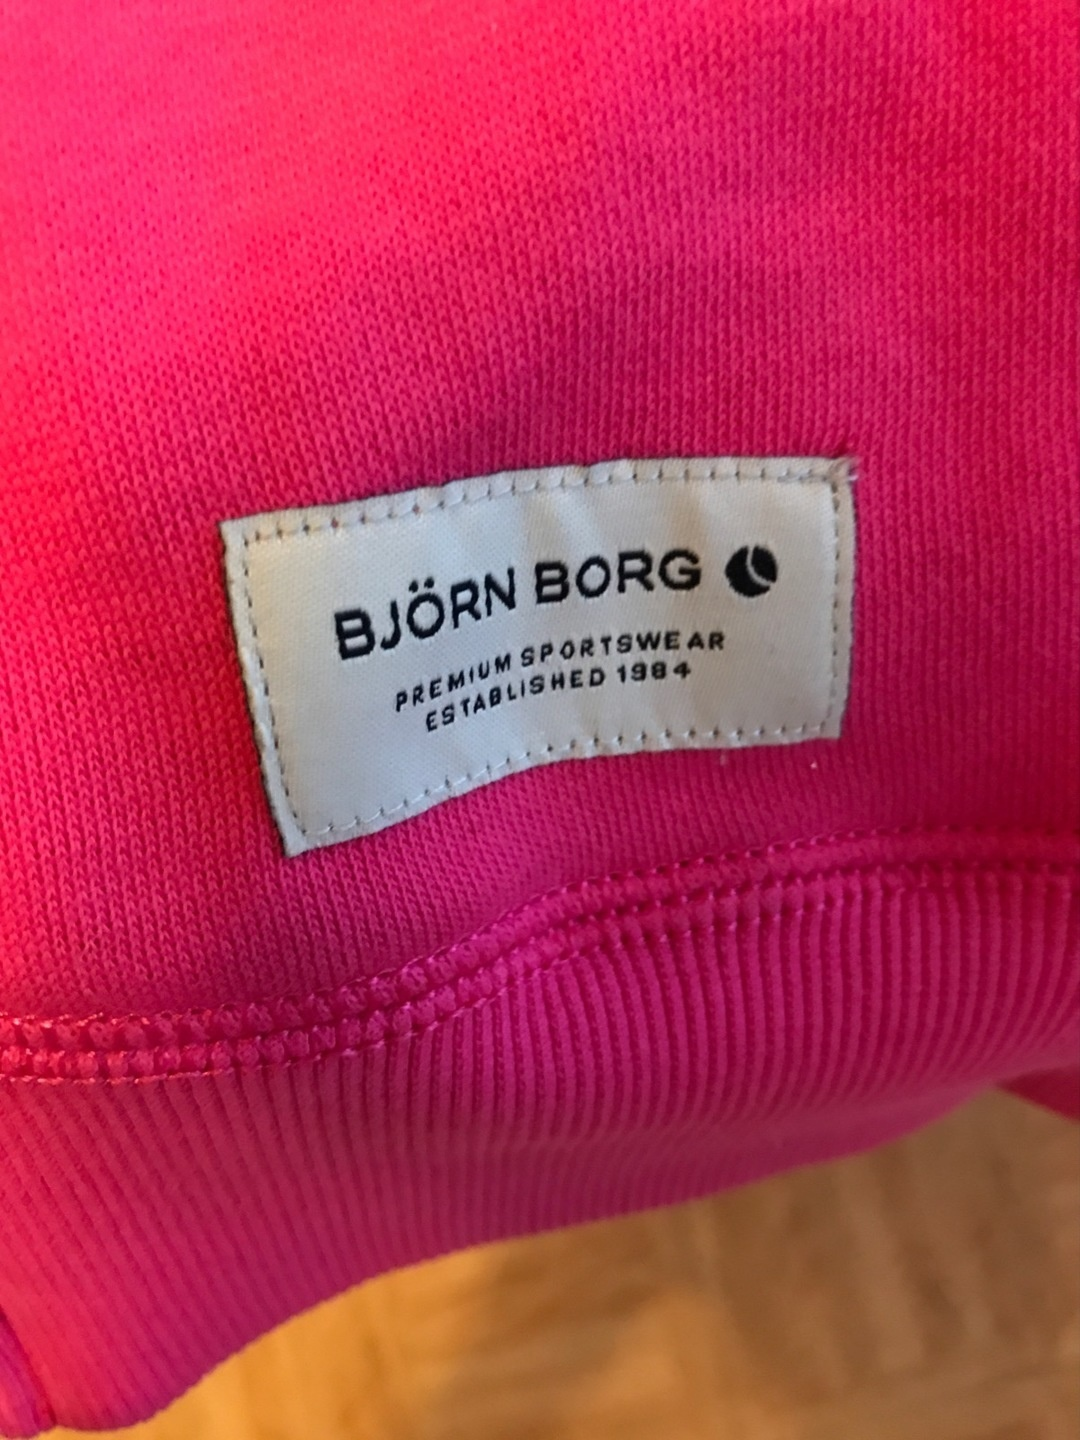 Women's hoodies & sweatshirts - BJÖRN BORG photo 4